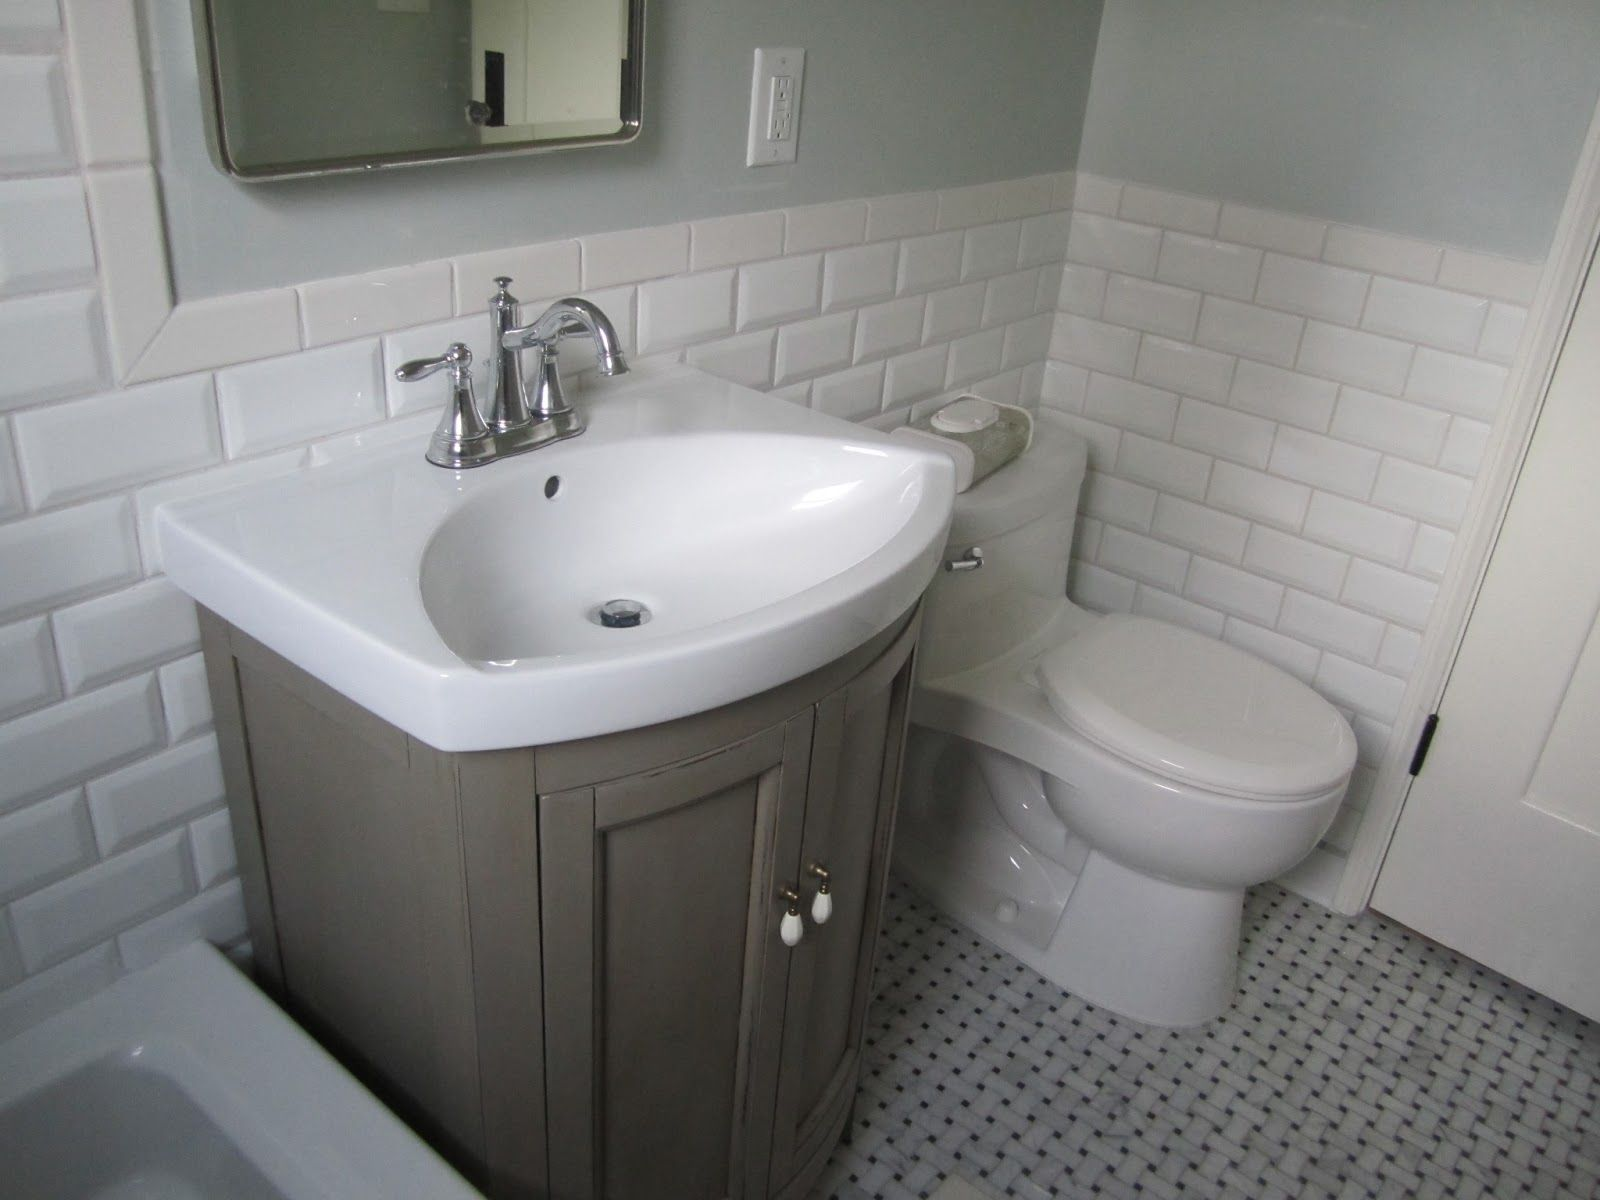 Bathroom Remodels With Subway Tile classy white subway ceramic bath wall tiled and gray single sink